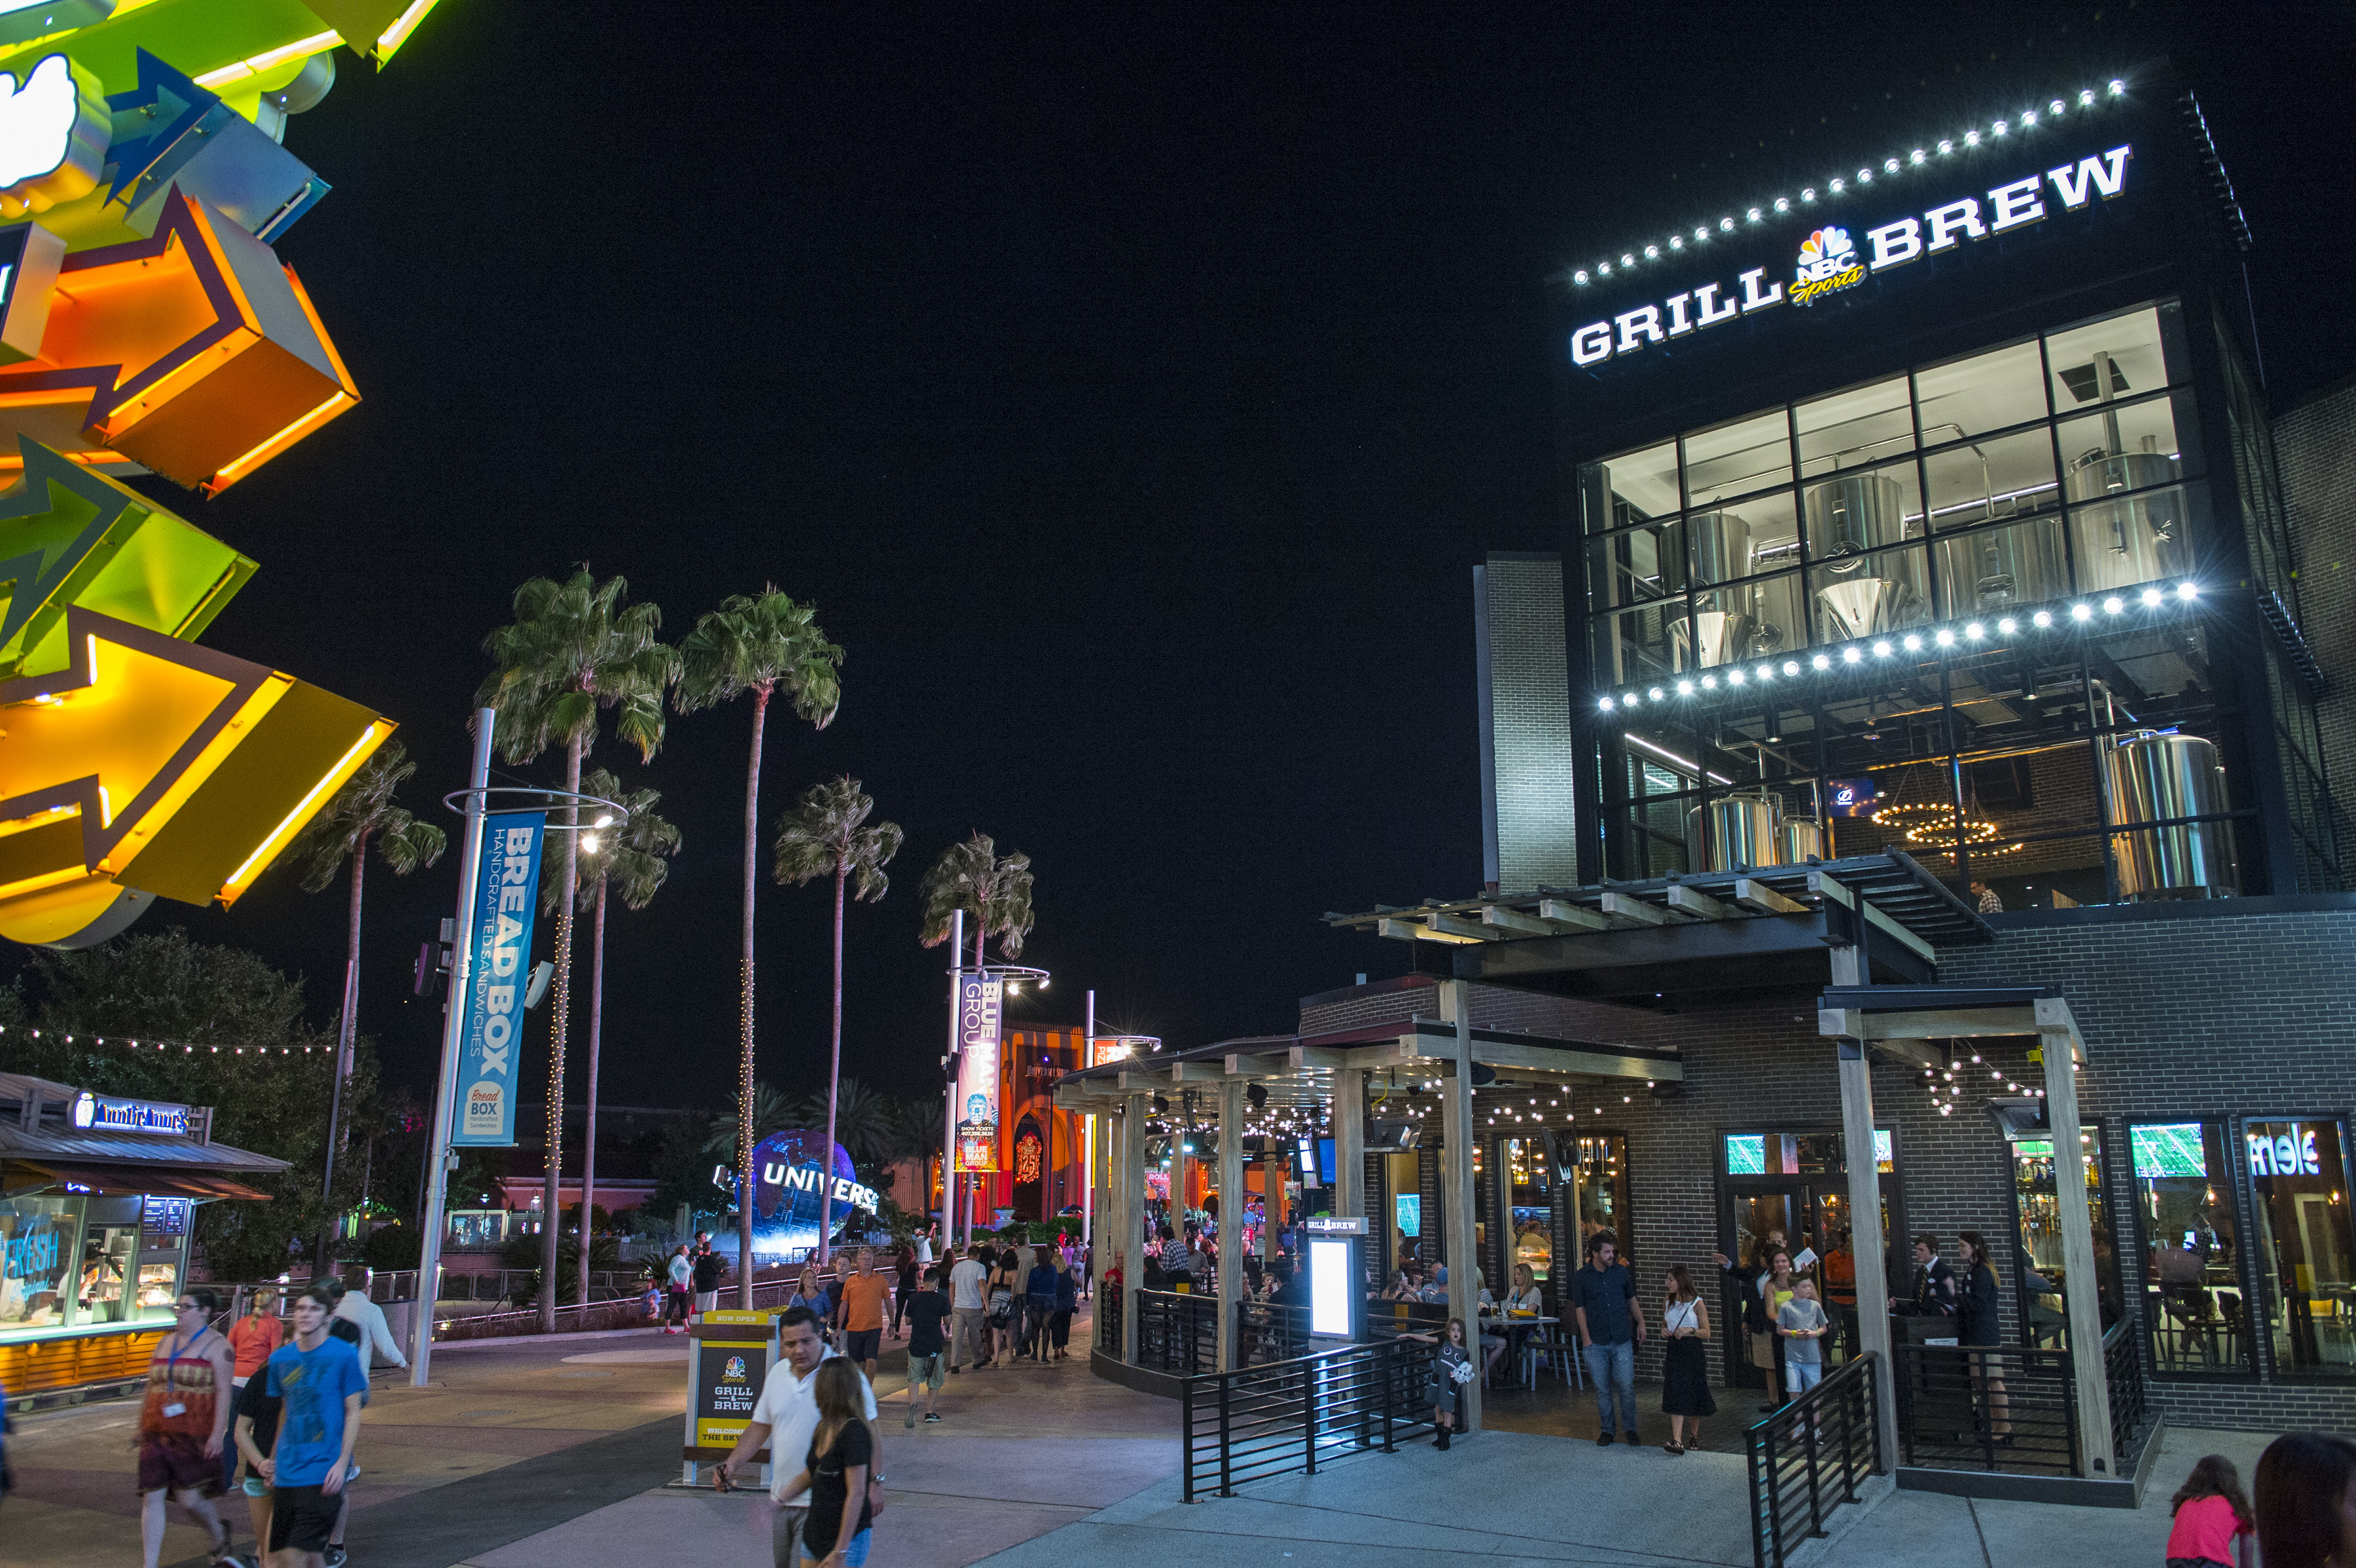 NBC Sports Grill & Brew at Universal Orlando's CityWalk.